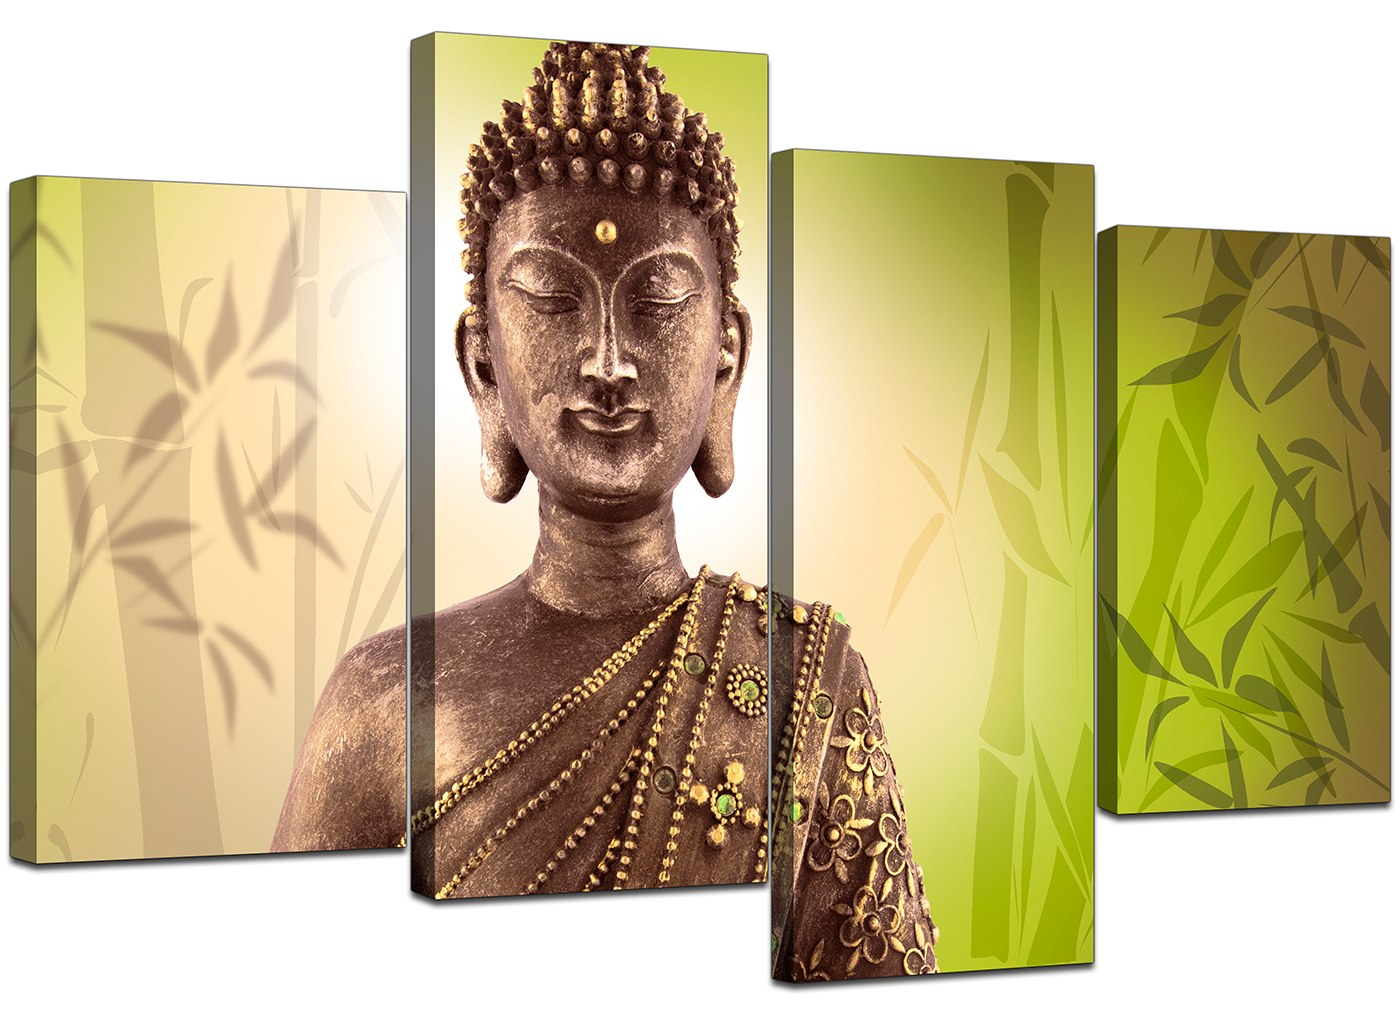 Buddha Wall Art Uk - Elitflat